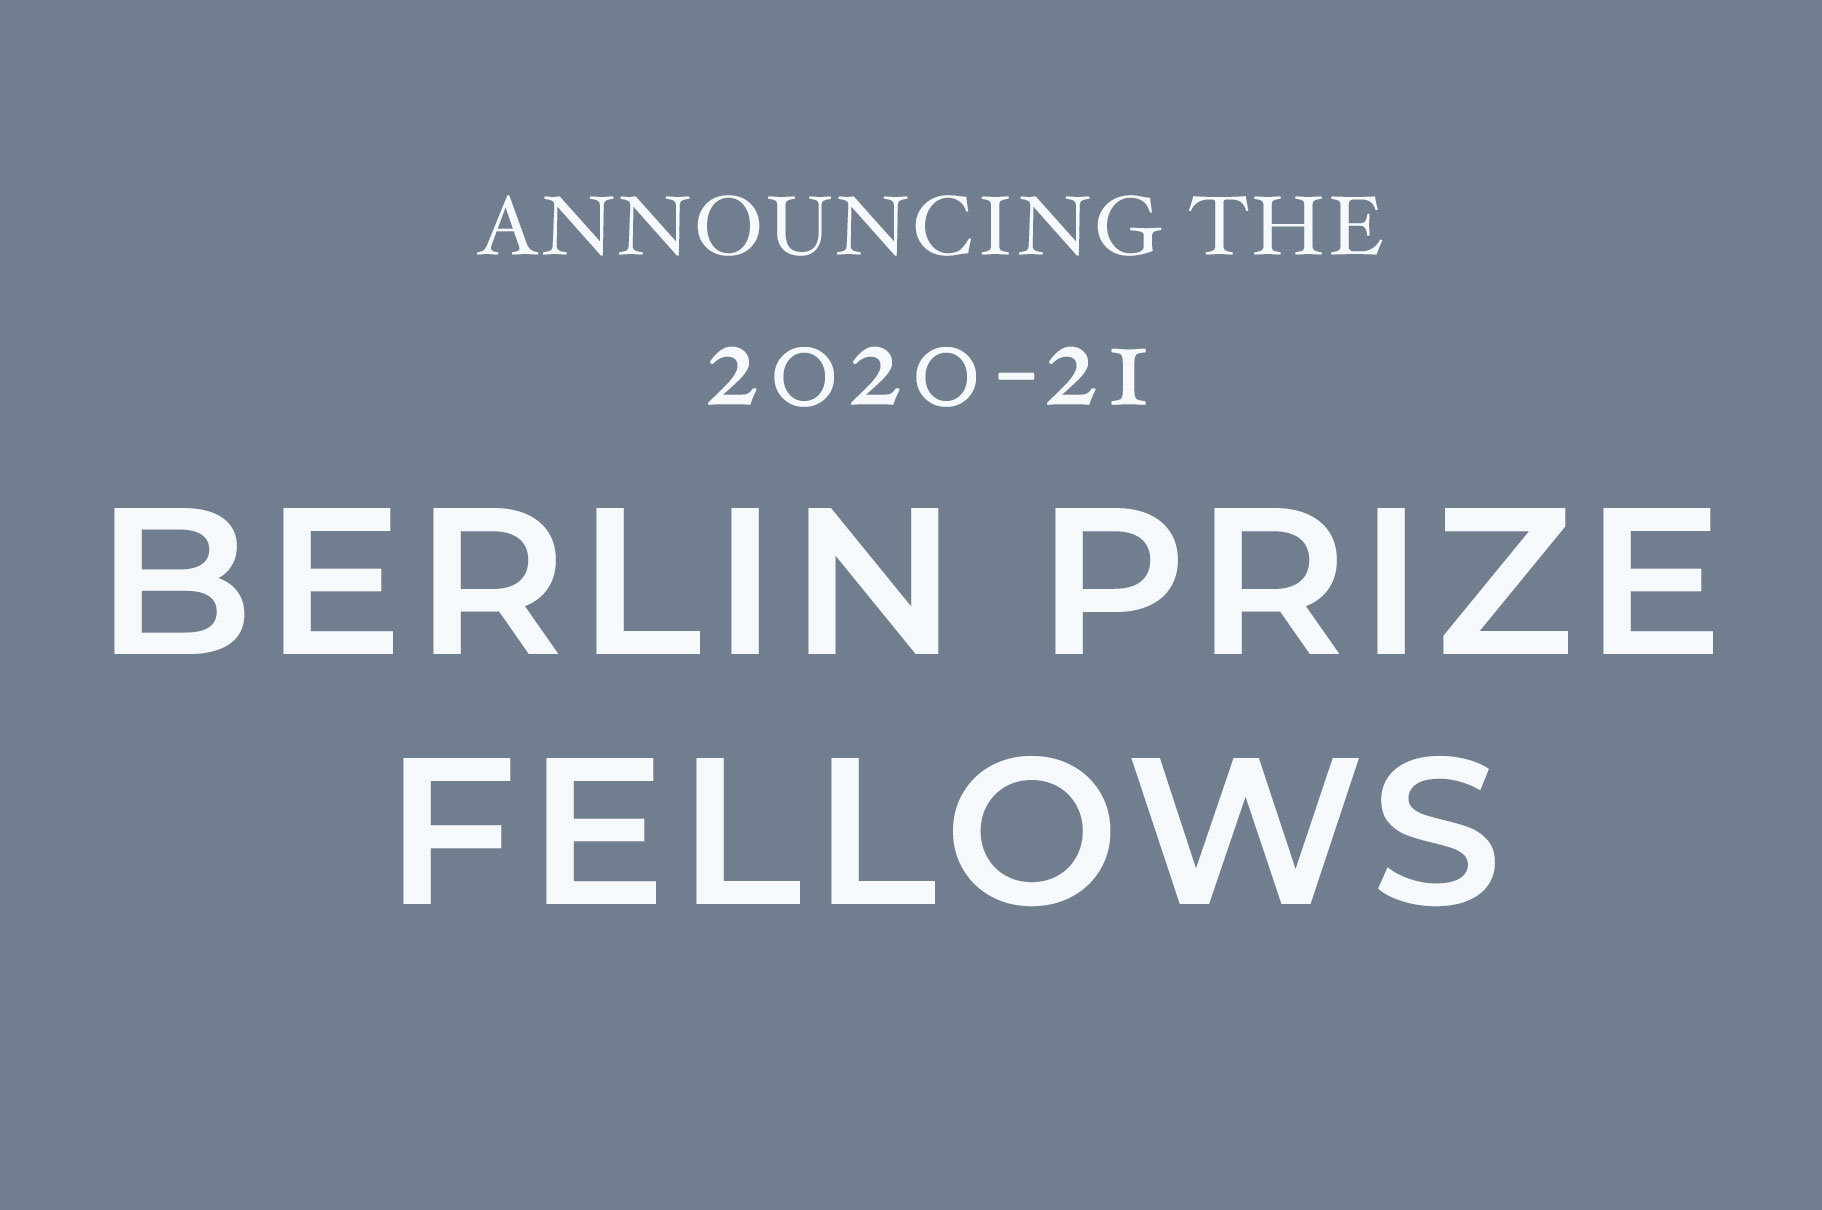 The 2020-21 Berlin Prize Fellows